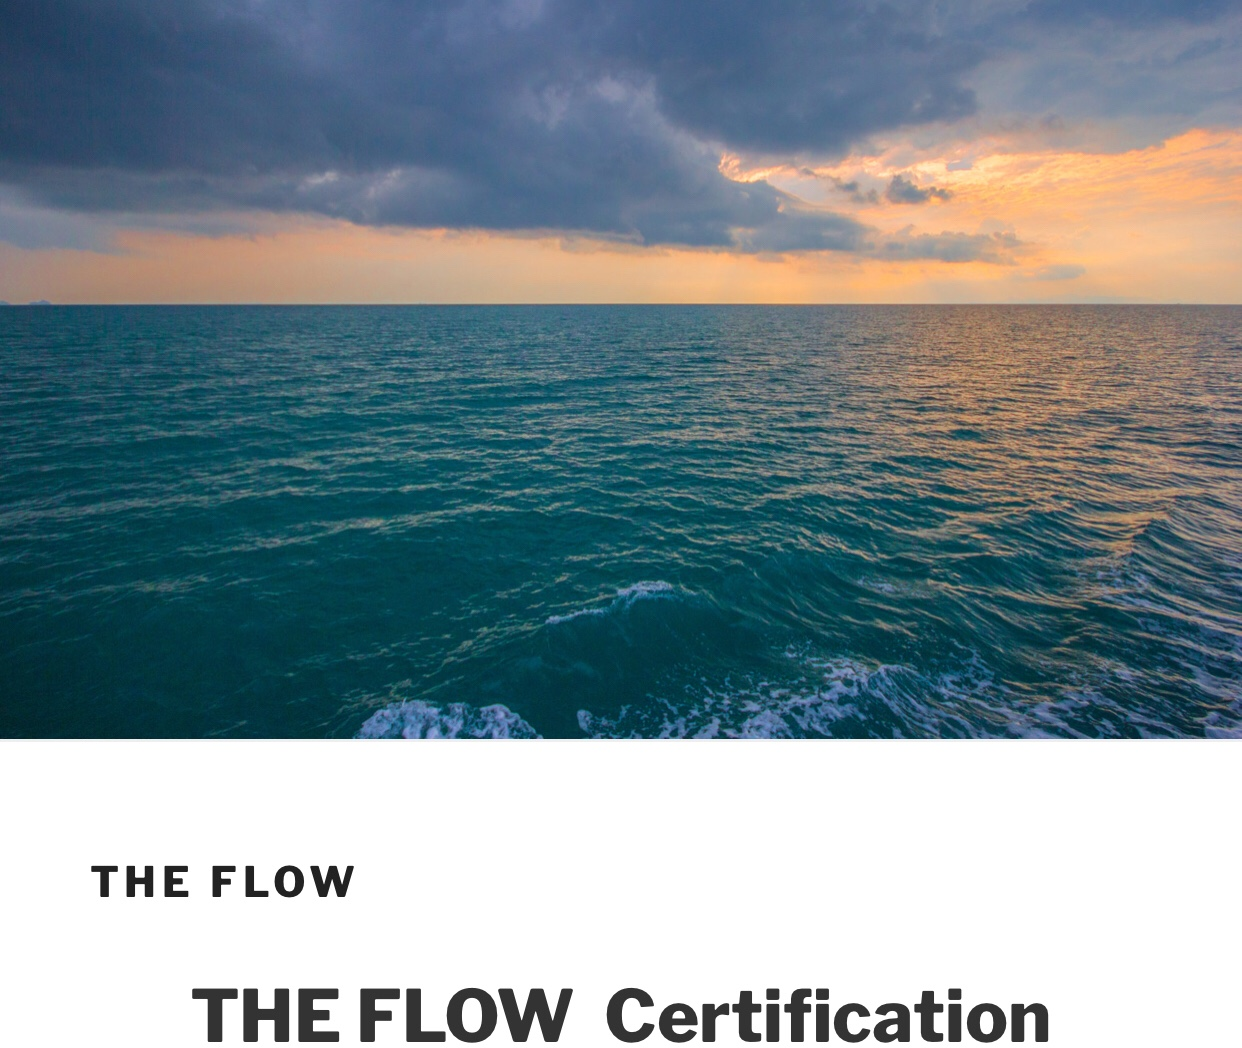 Certification -The Flow